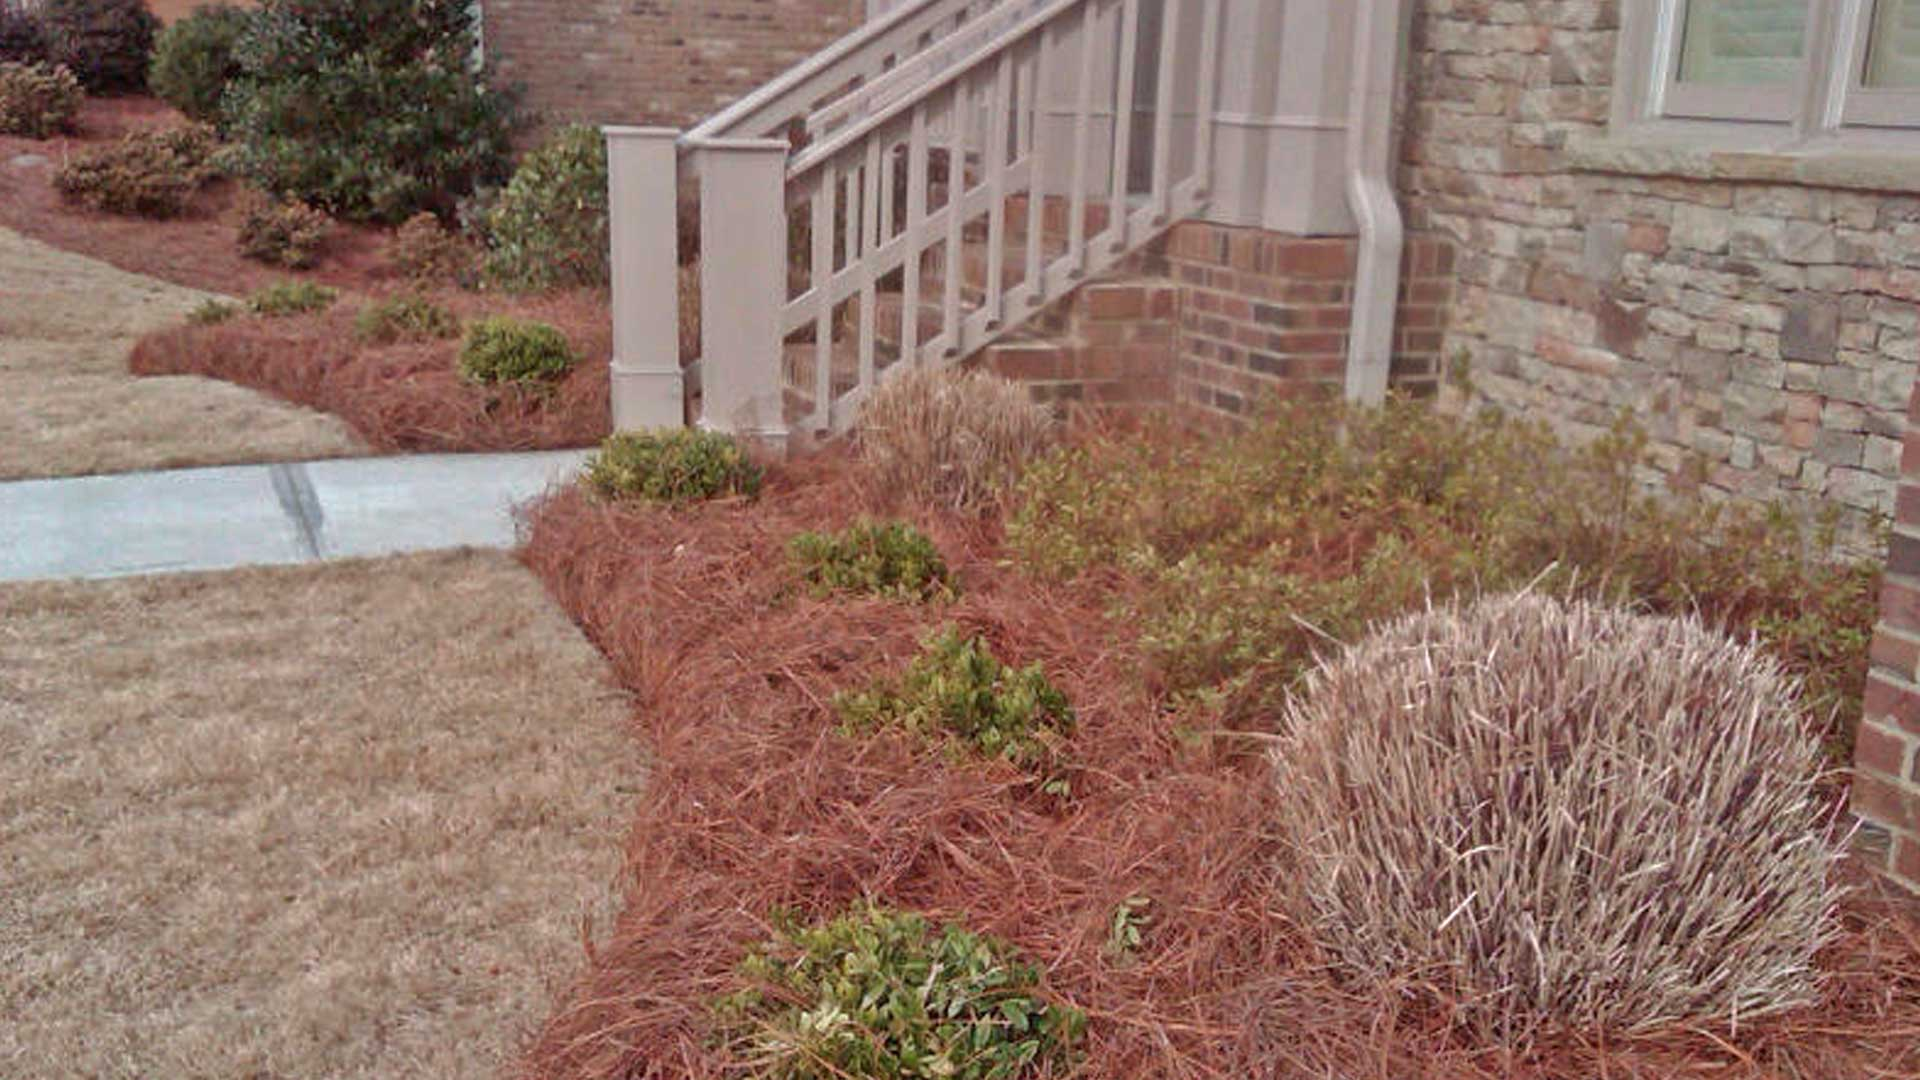 Landscape bed with fresh pine straw.